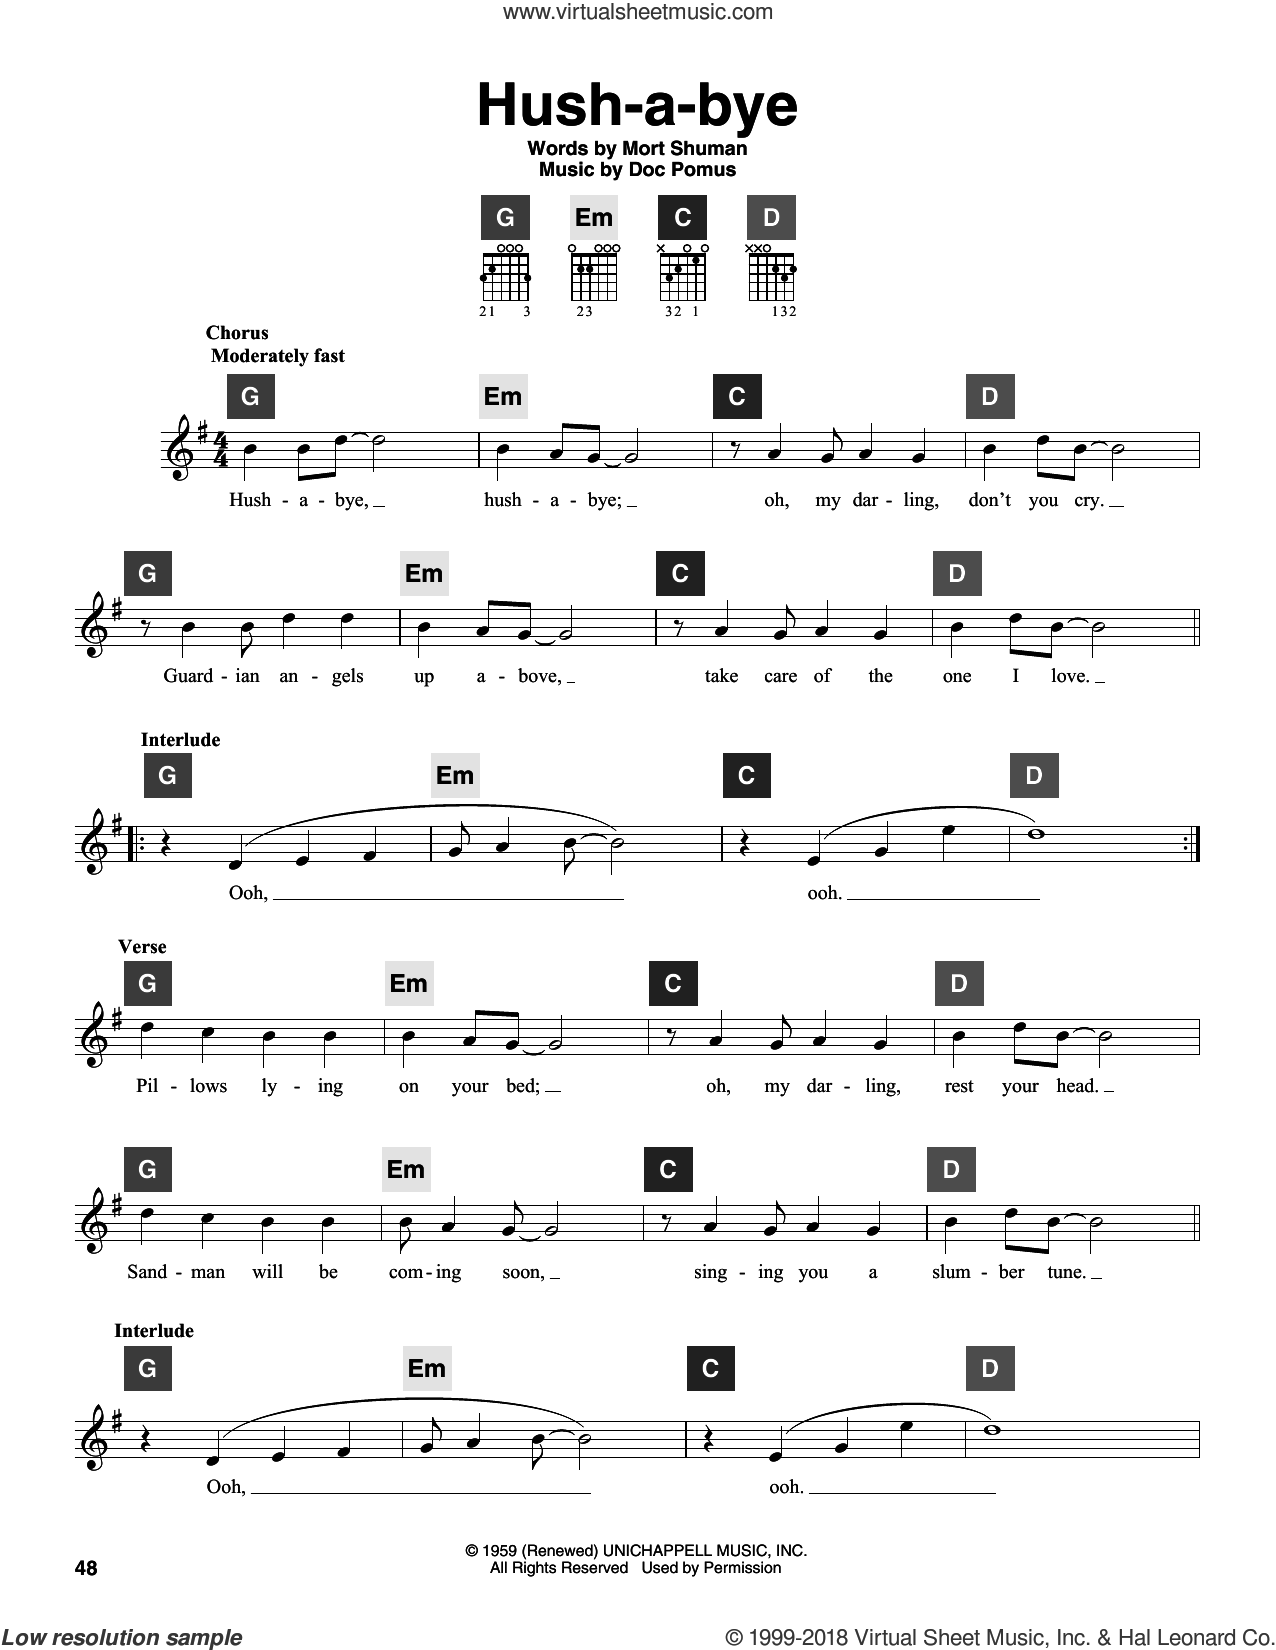 Hush-a-bye sheet music for guitar solo (ChordBuddy system) by Mort Shuman